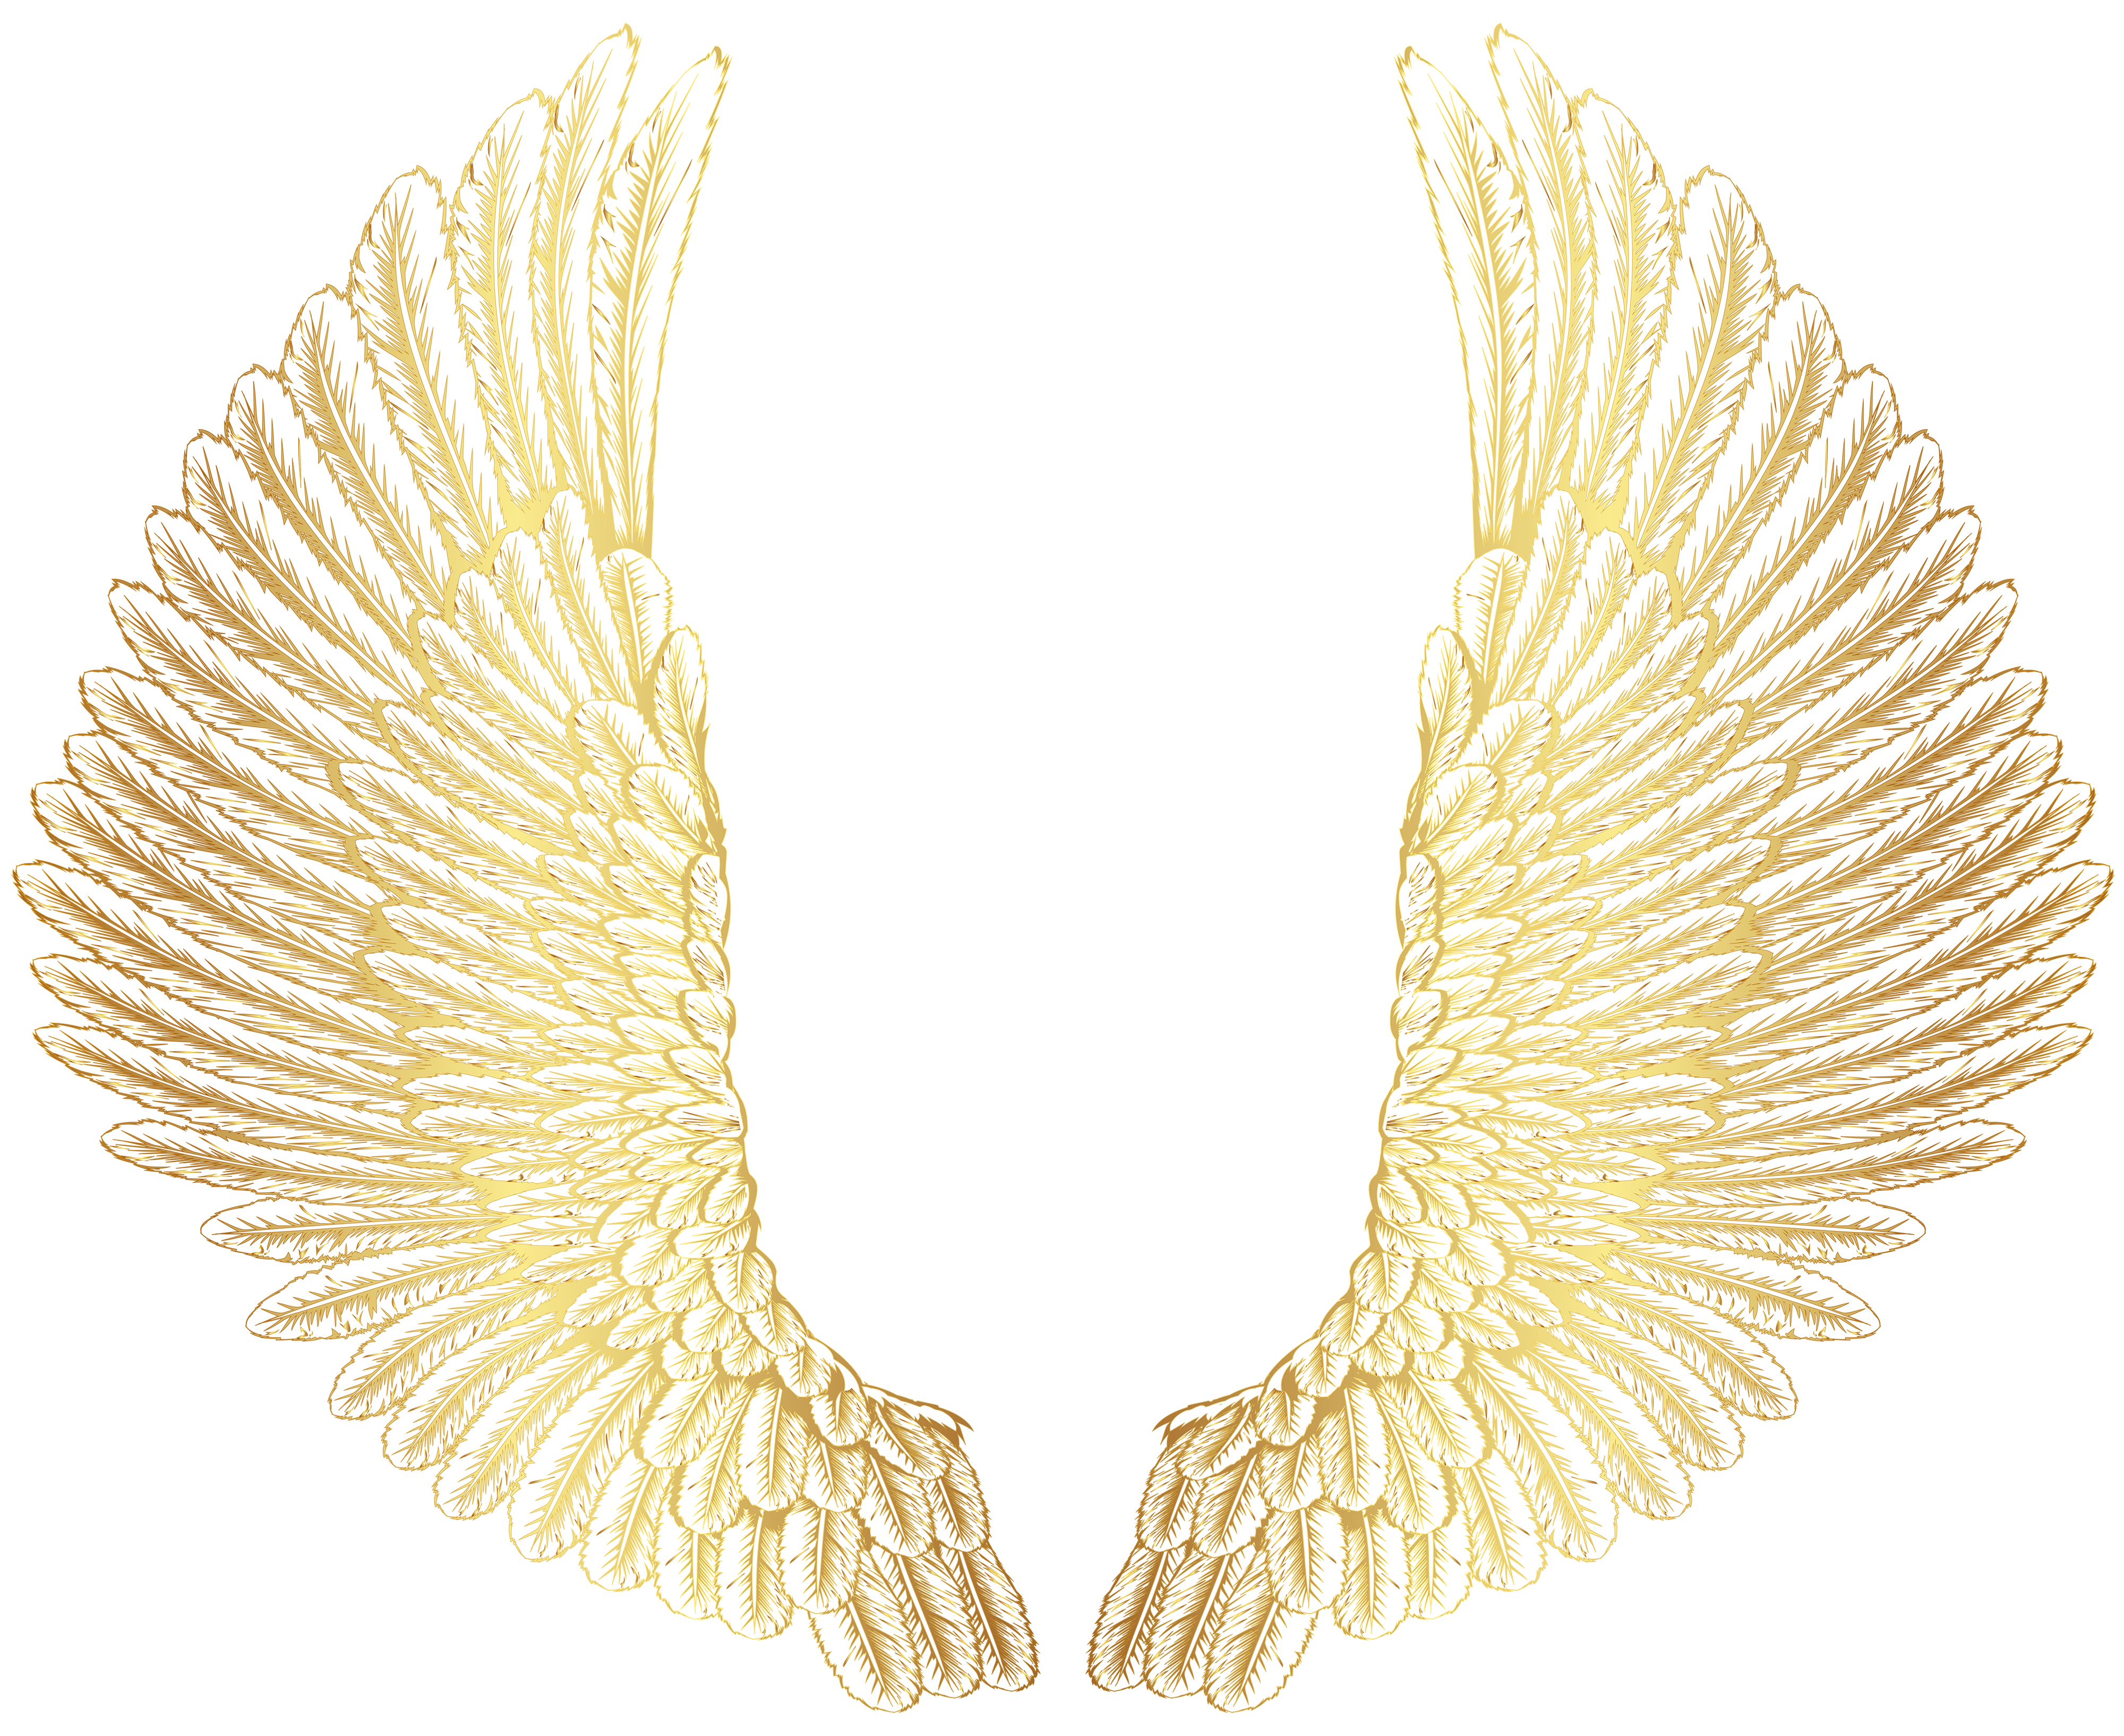 Wing clipart feather wing. Gold wings png clip